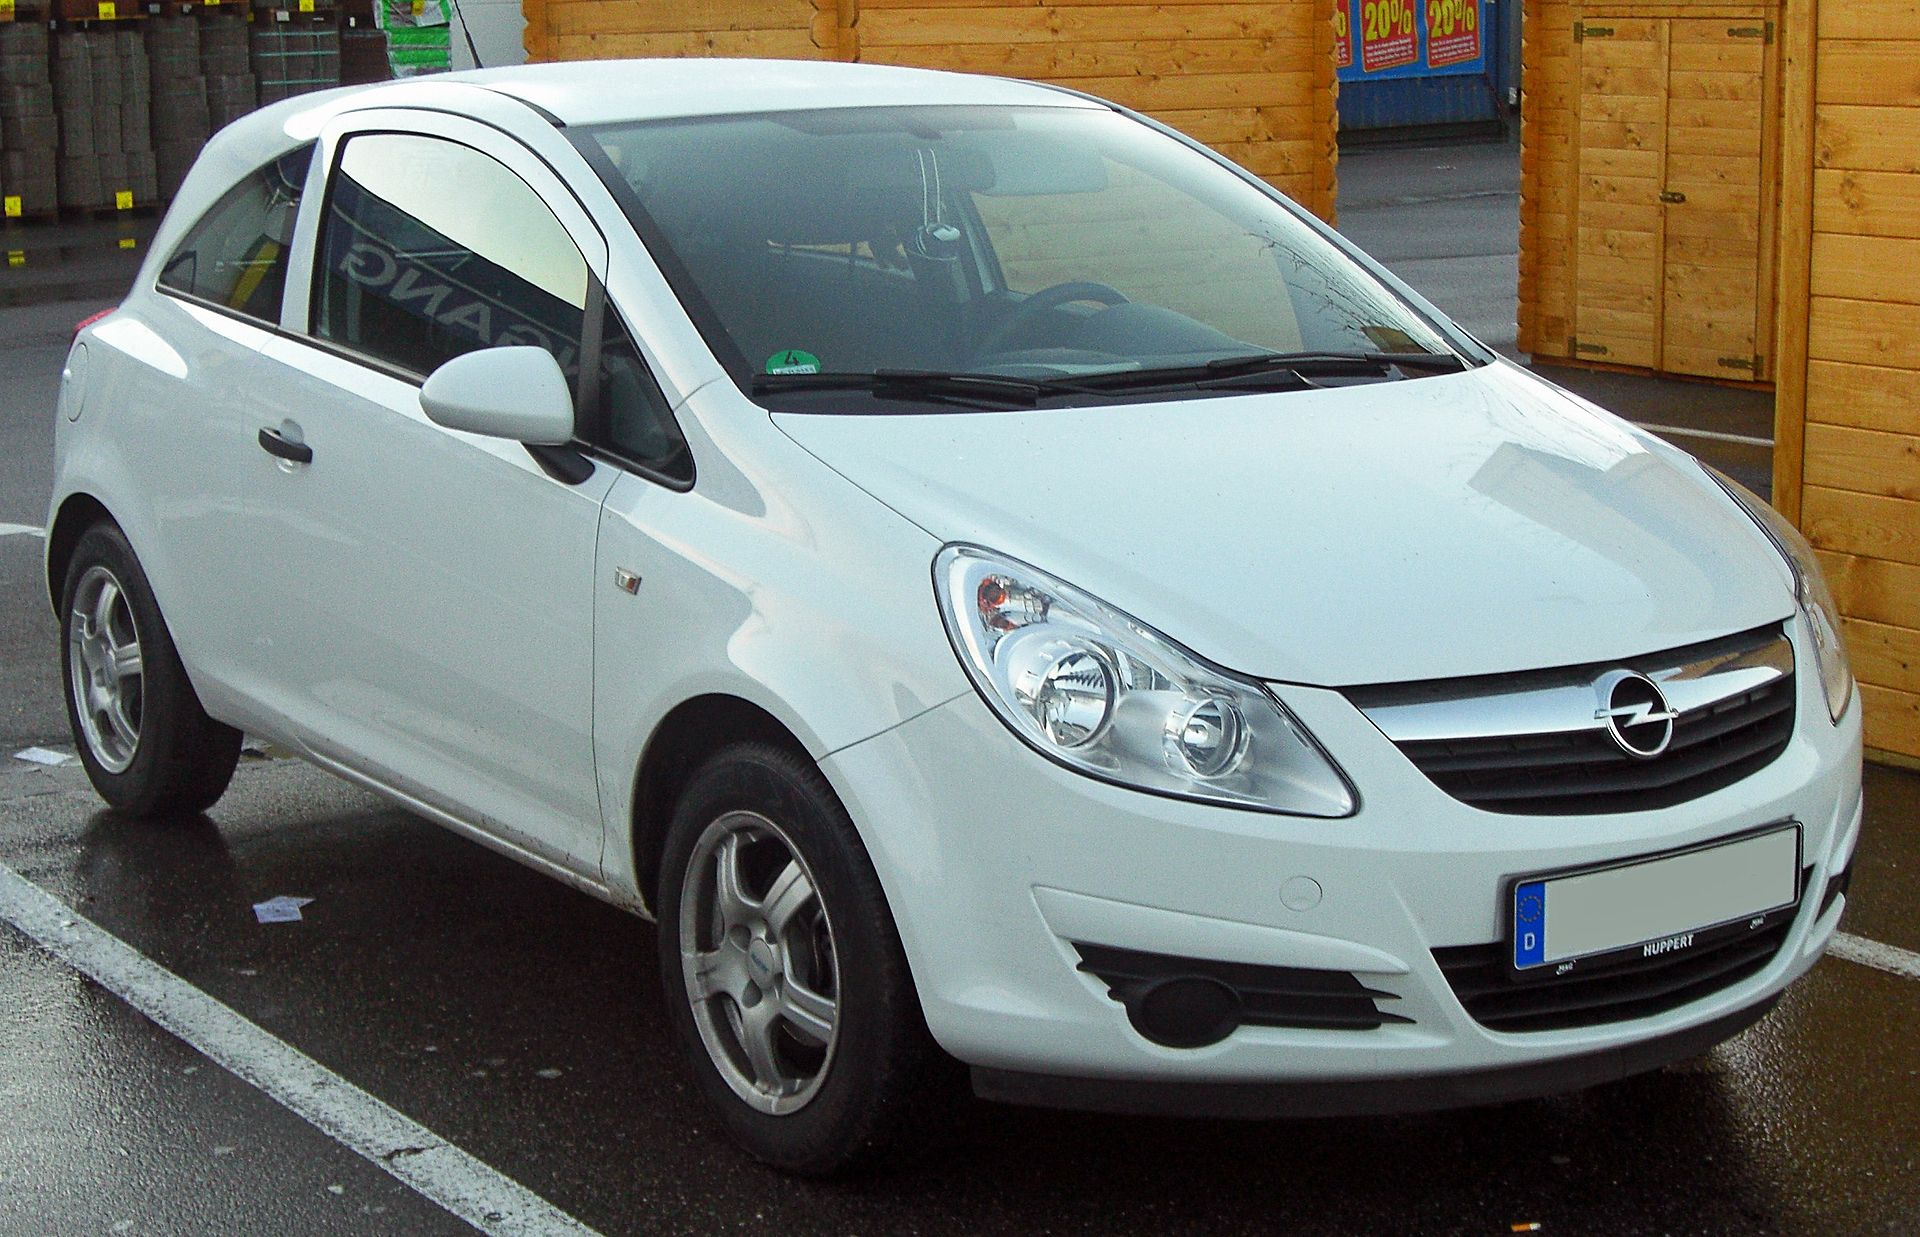 Fab E B besides Px Opel Corsa D Seit Front Mj further  additionally Maxresdefault in addition Maxresdefault. on opel corsa b